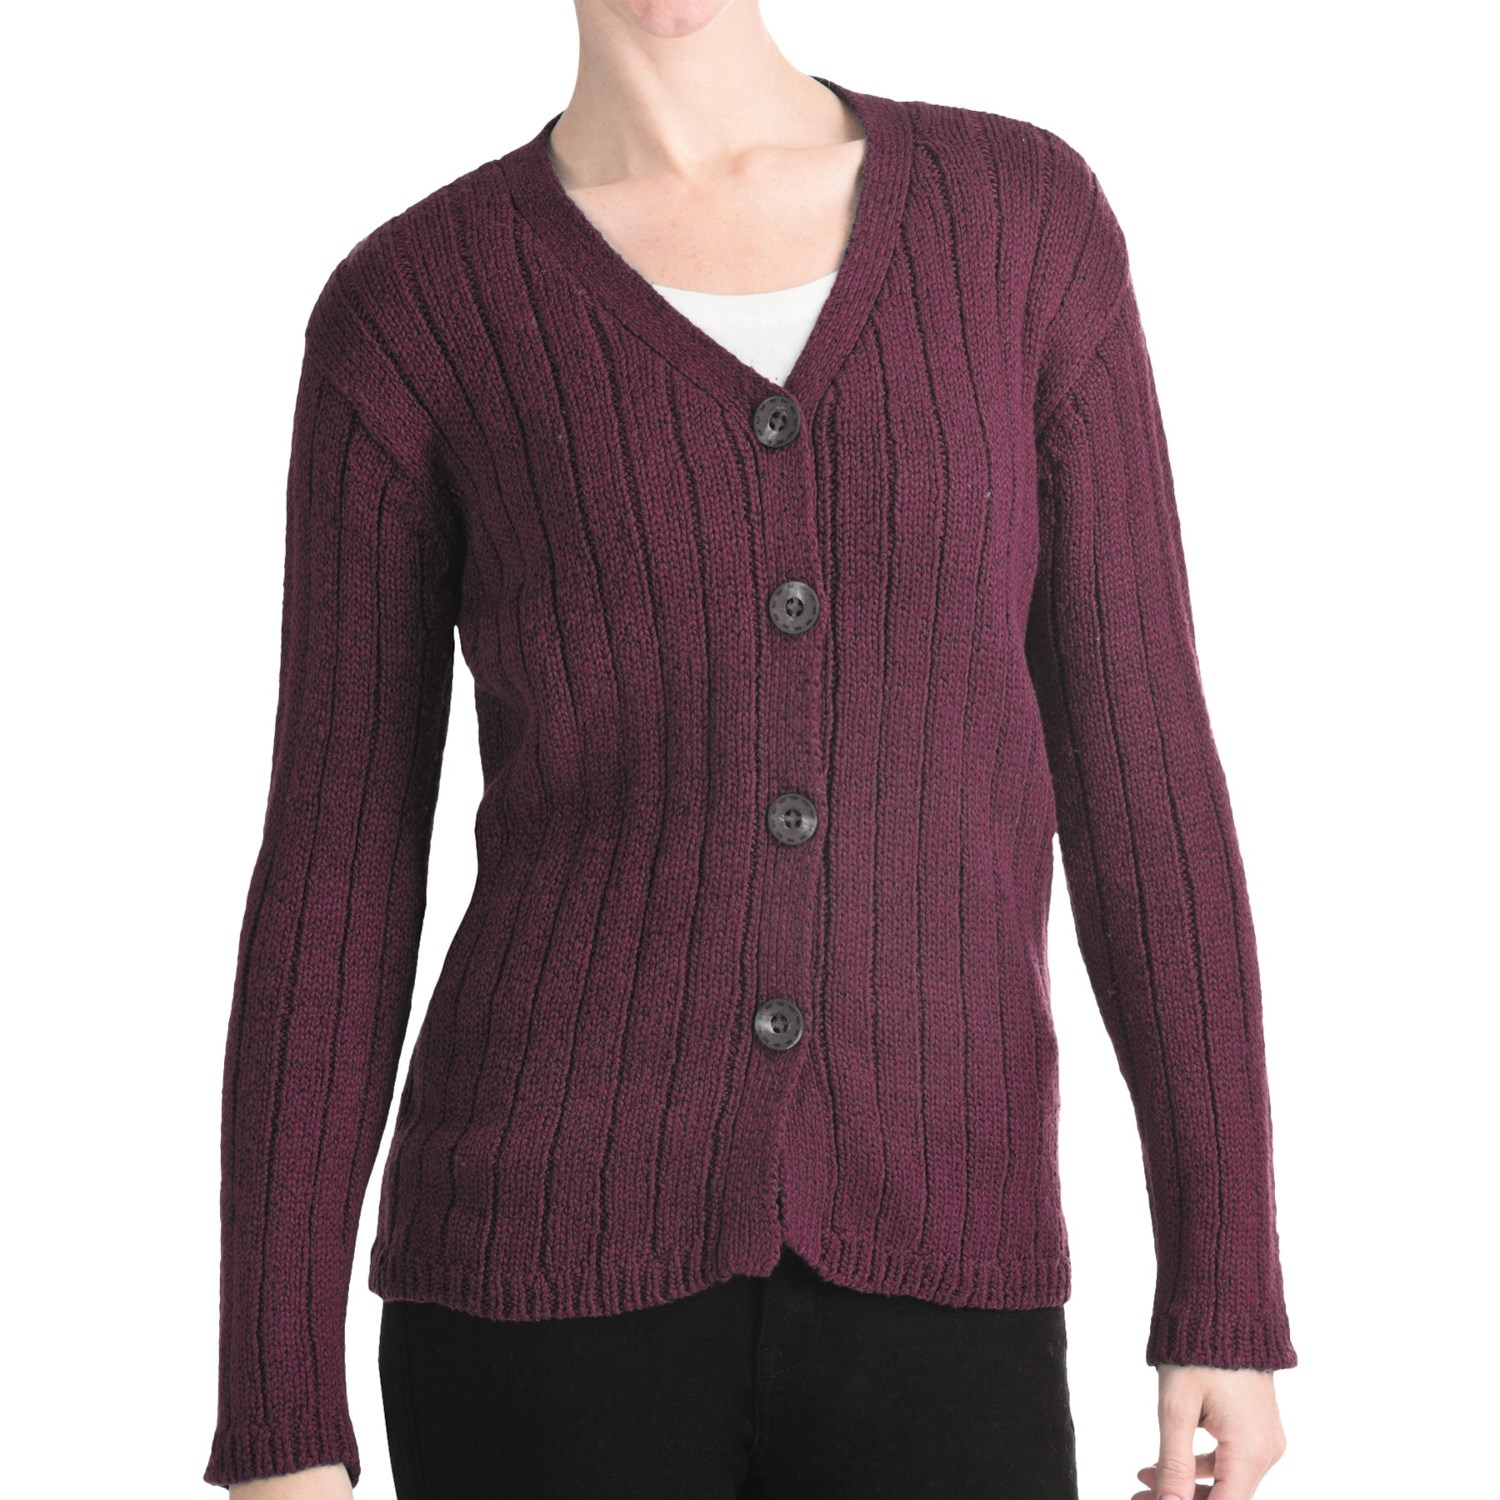 Women's jumpers in stylish designs & top quality yarns. Oversized, neat & jumper dress fits. Free P&P on orders over £